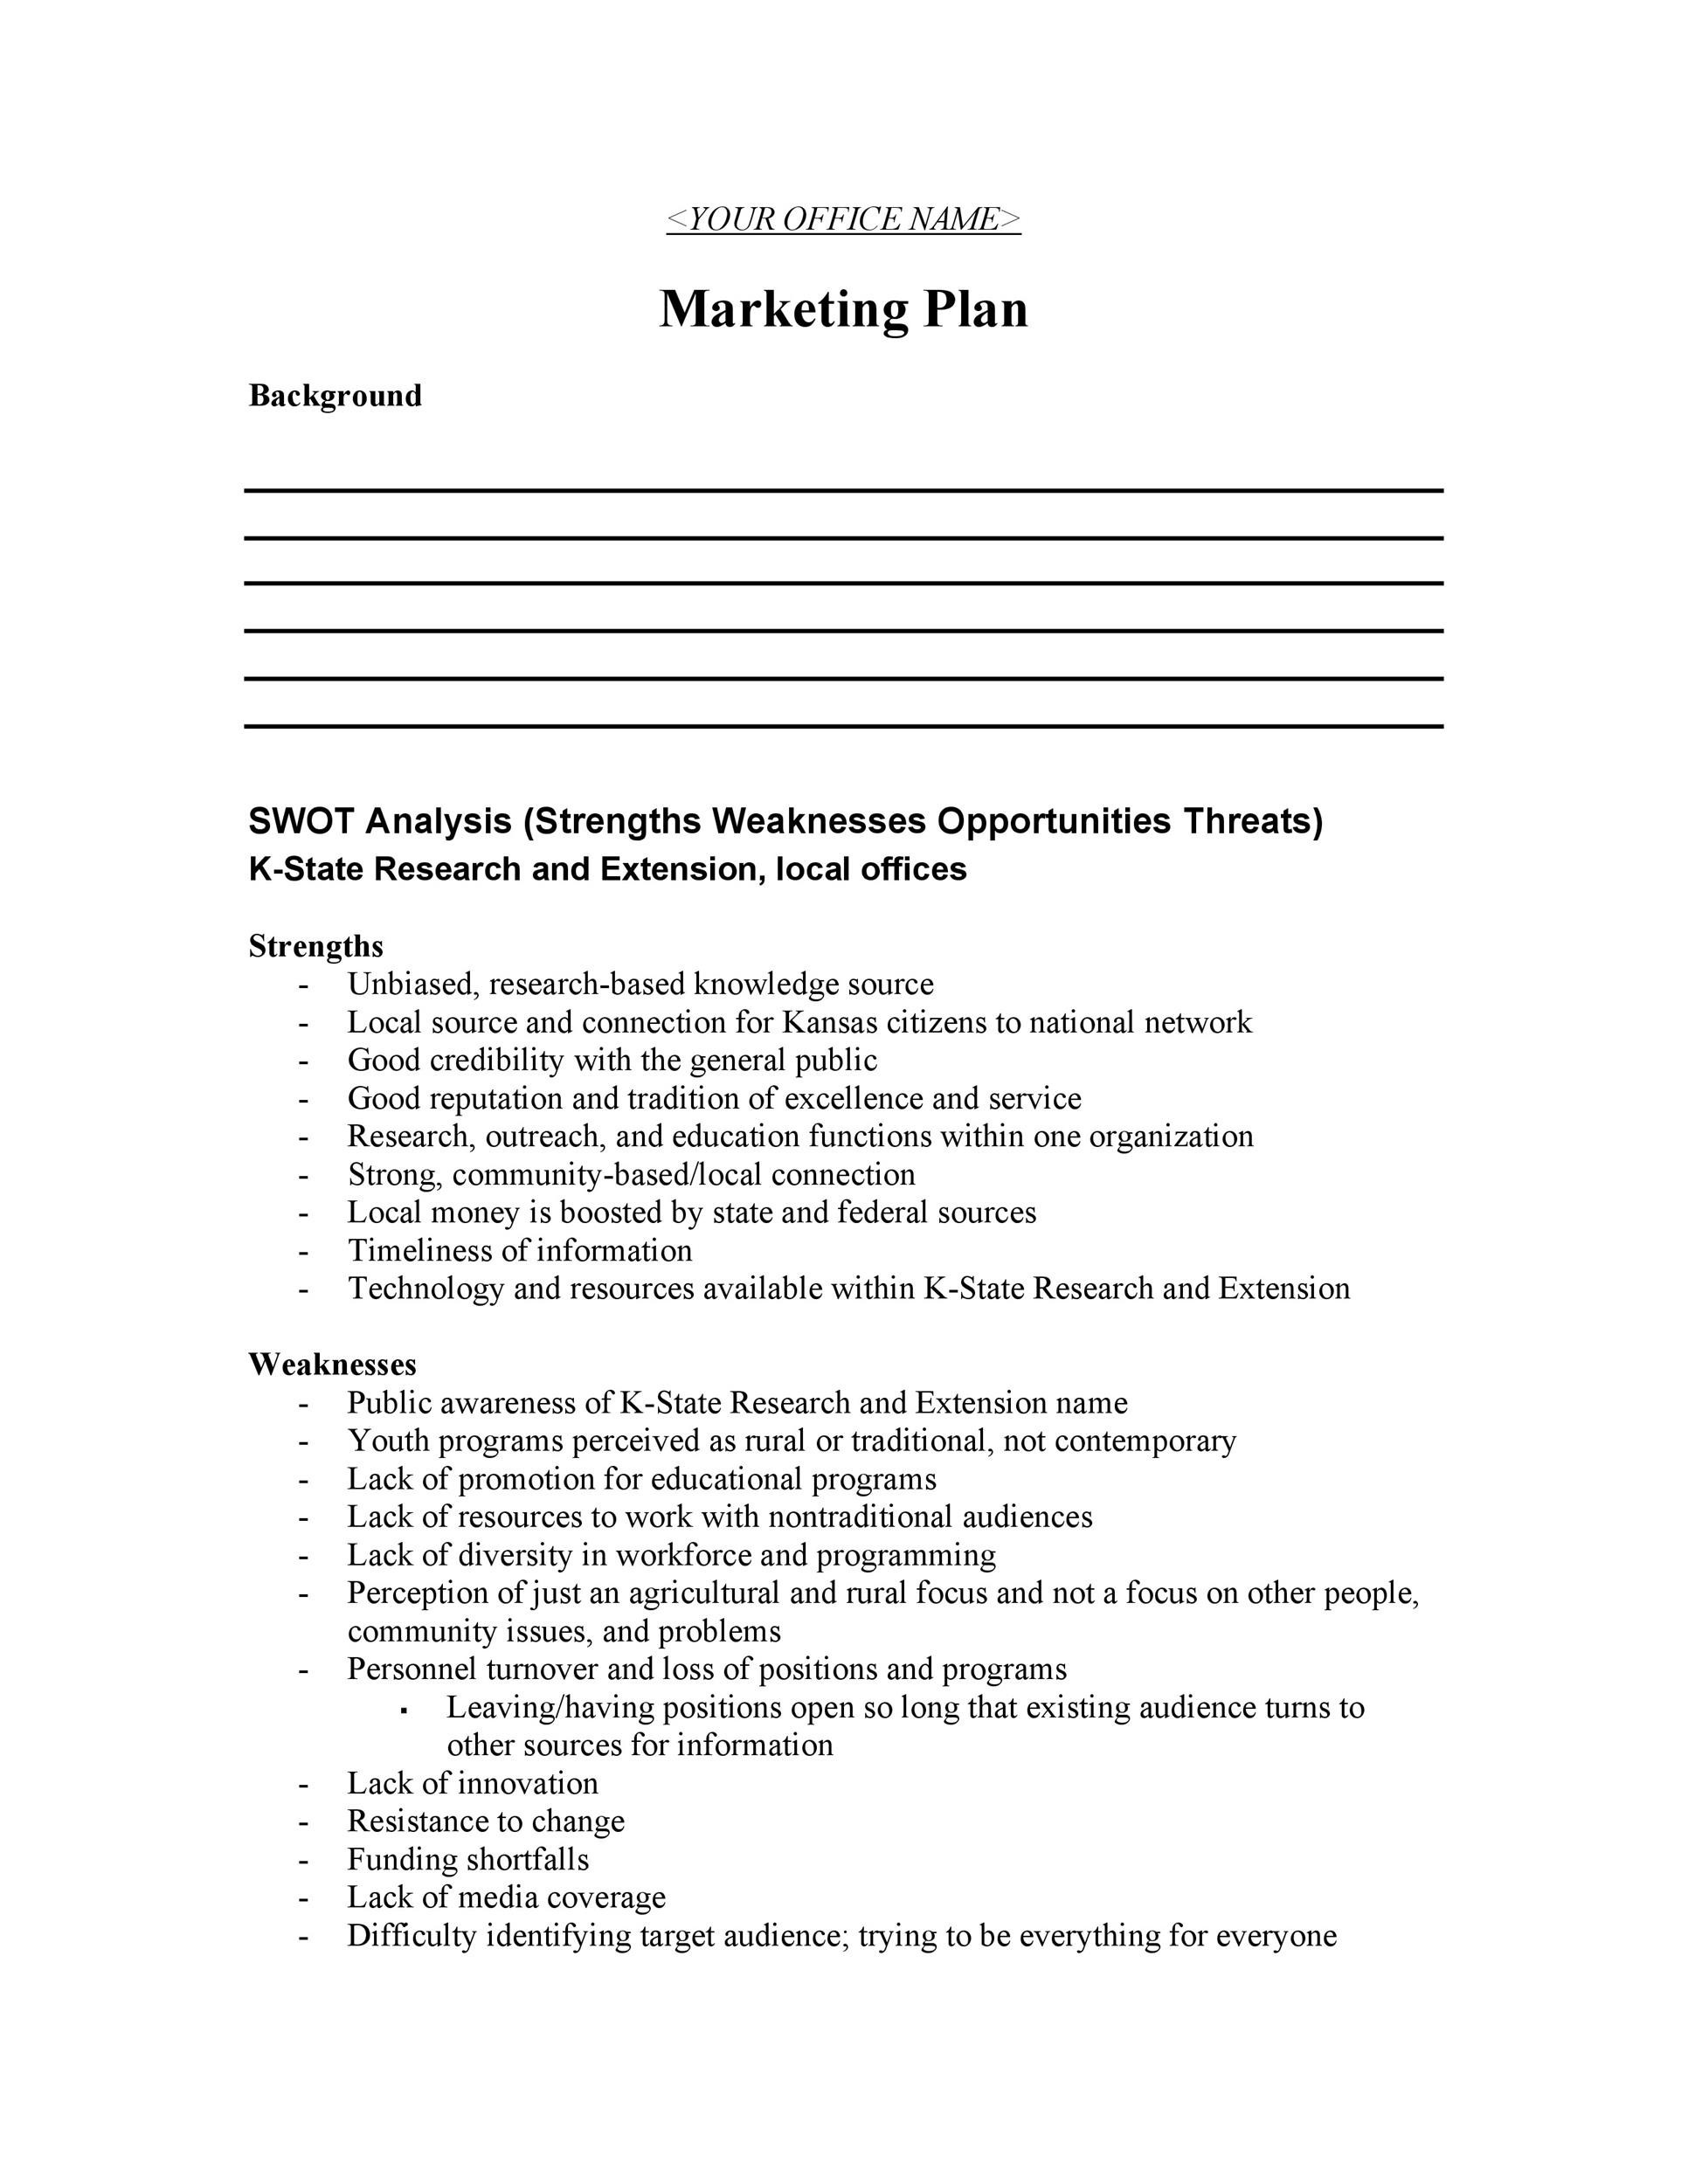 Free Marketing Plan Template 22